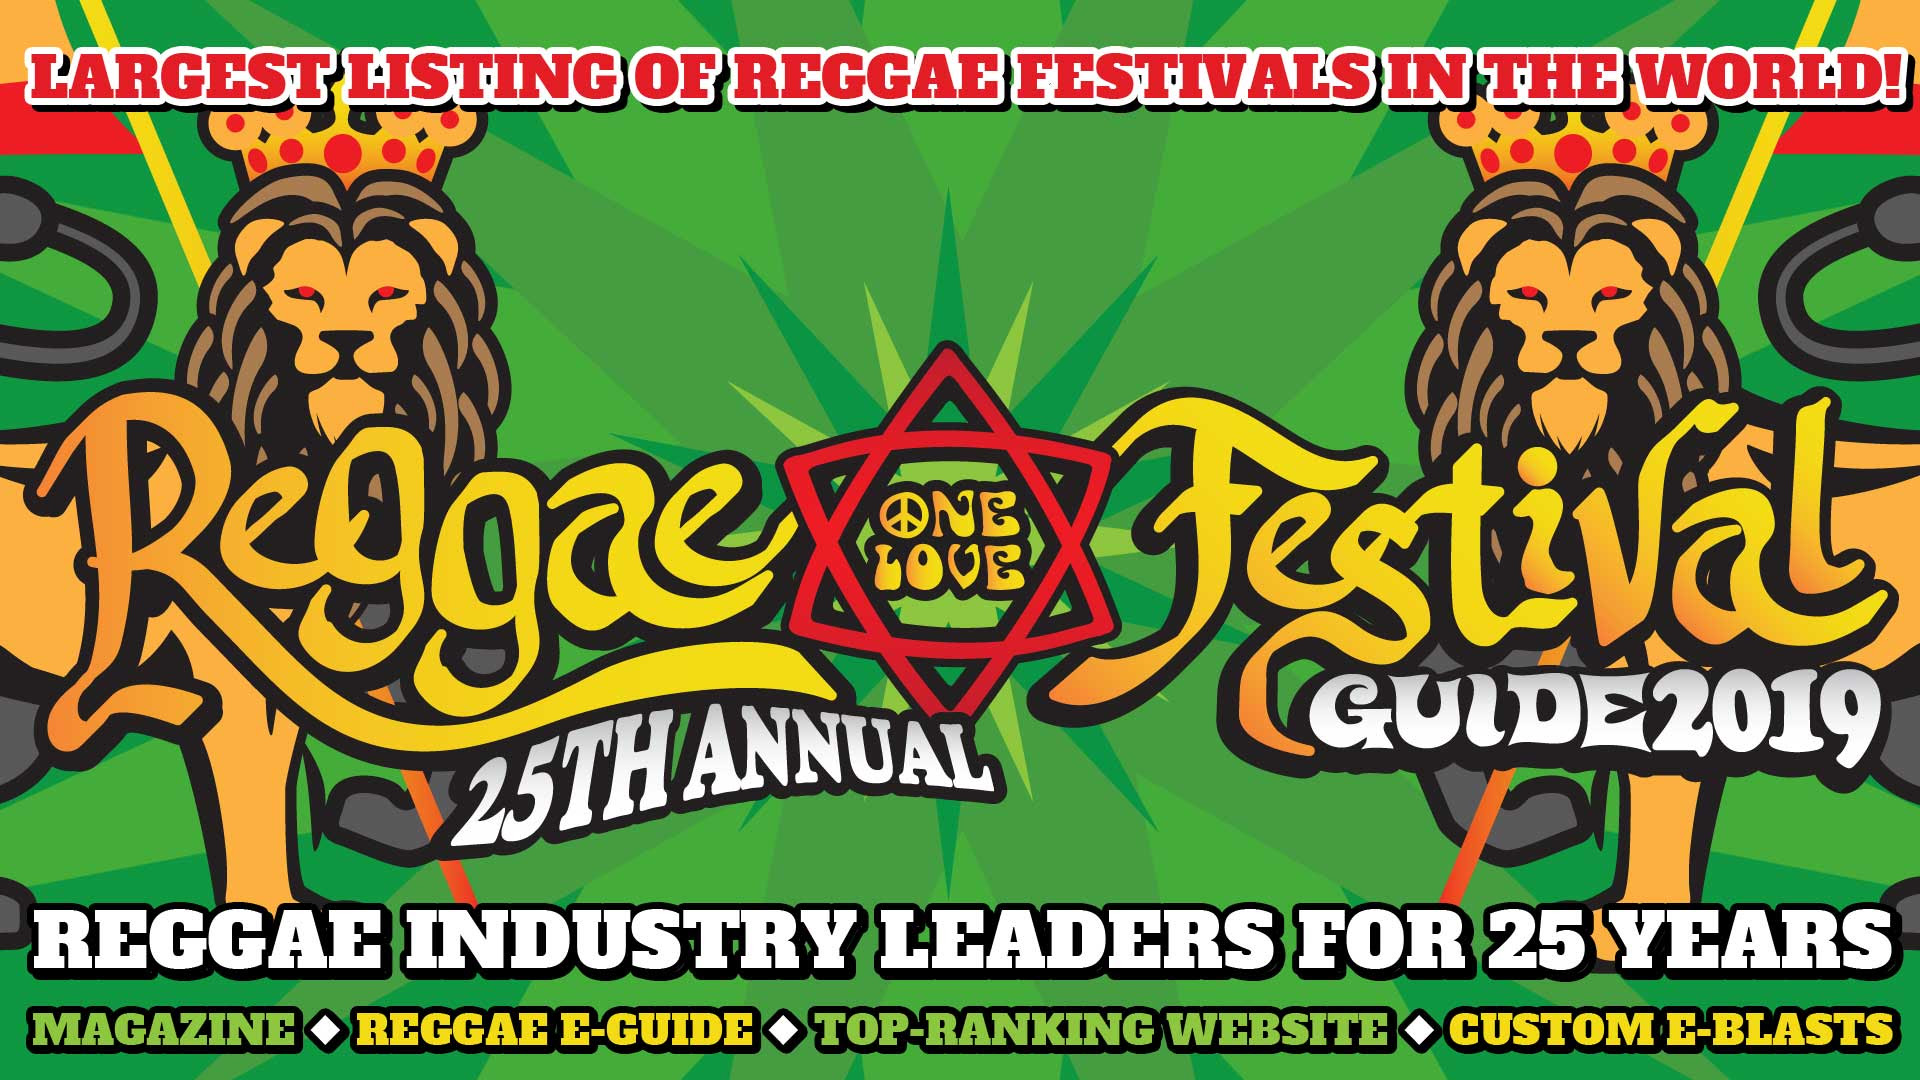 BRAND NEW single California Girl By Mystique will be featuring in the Reggae Festival Magazine.